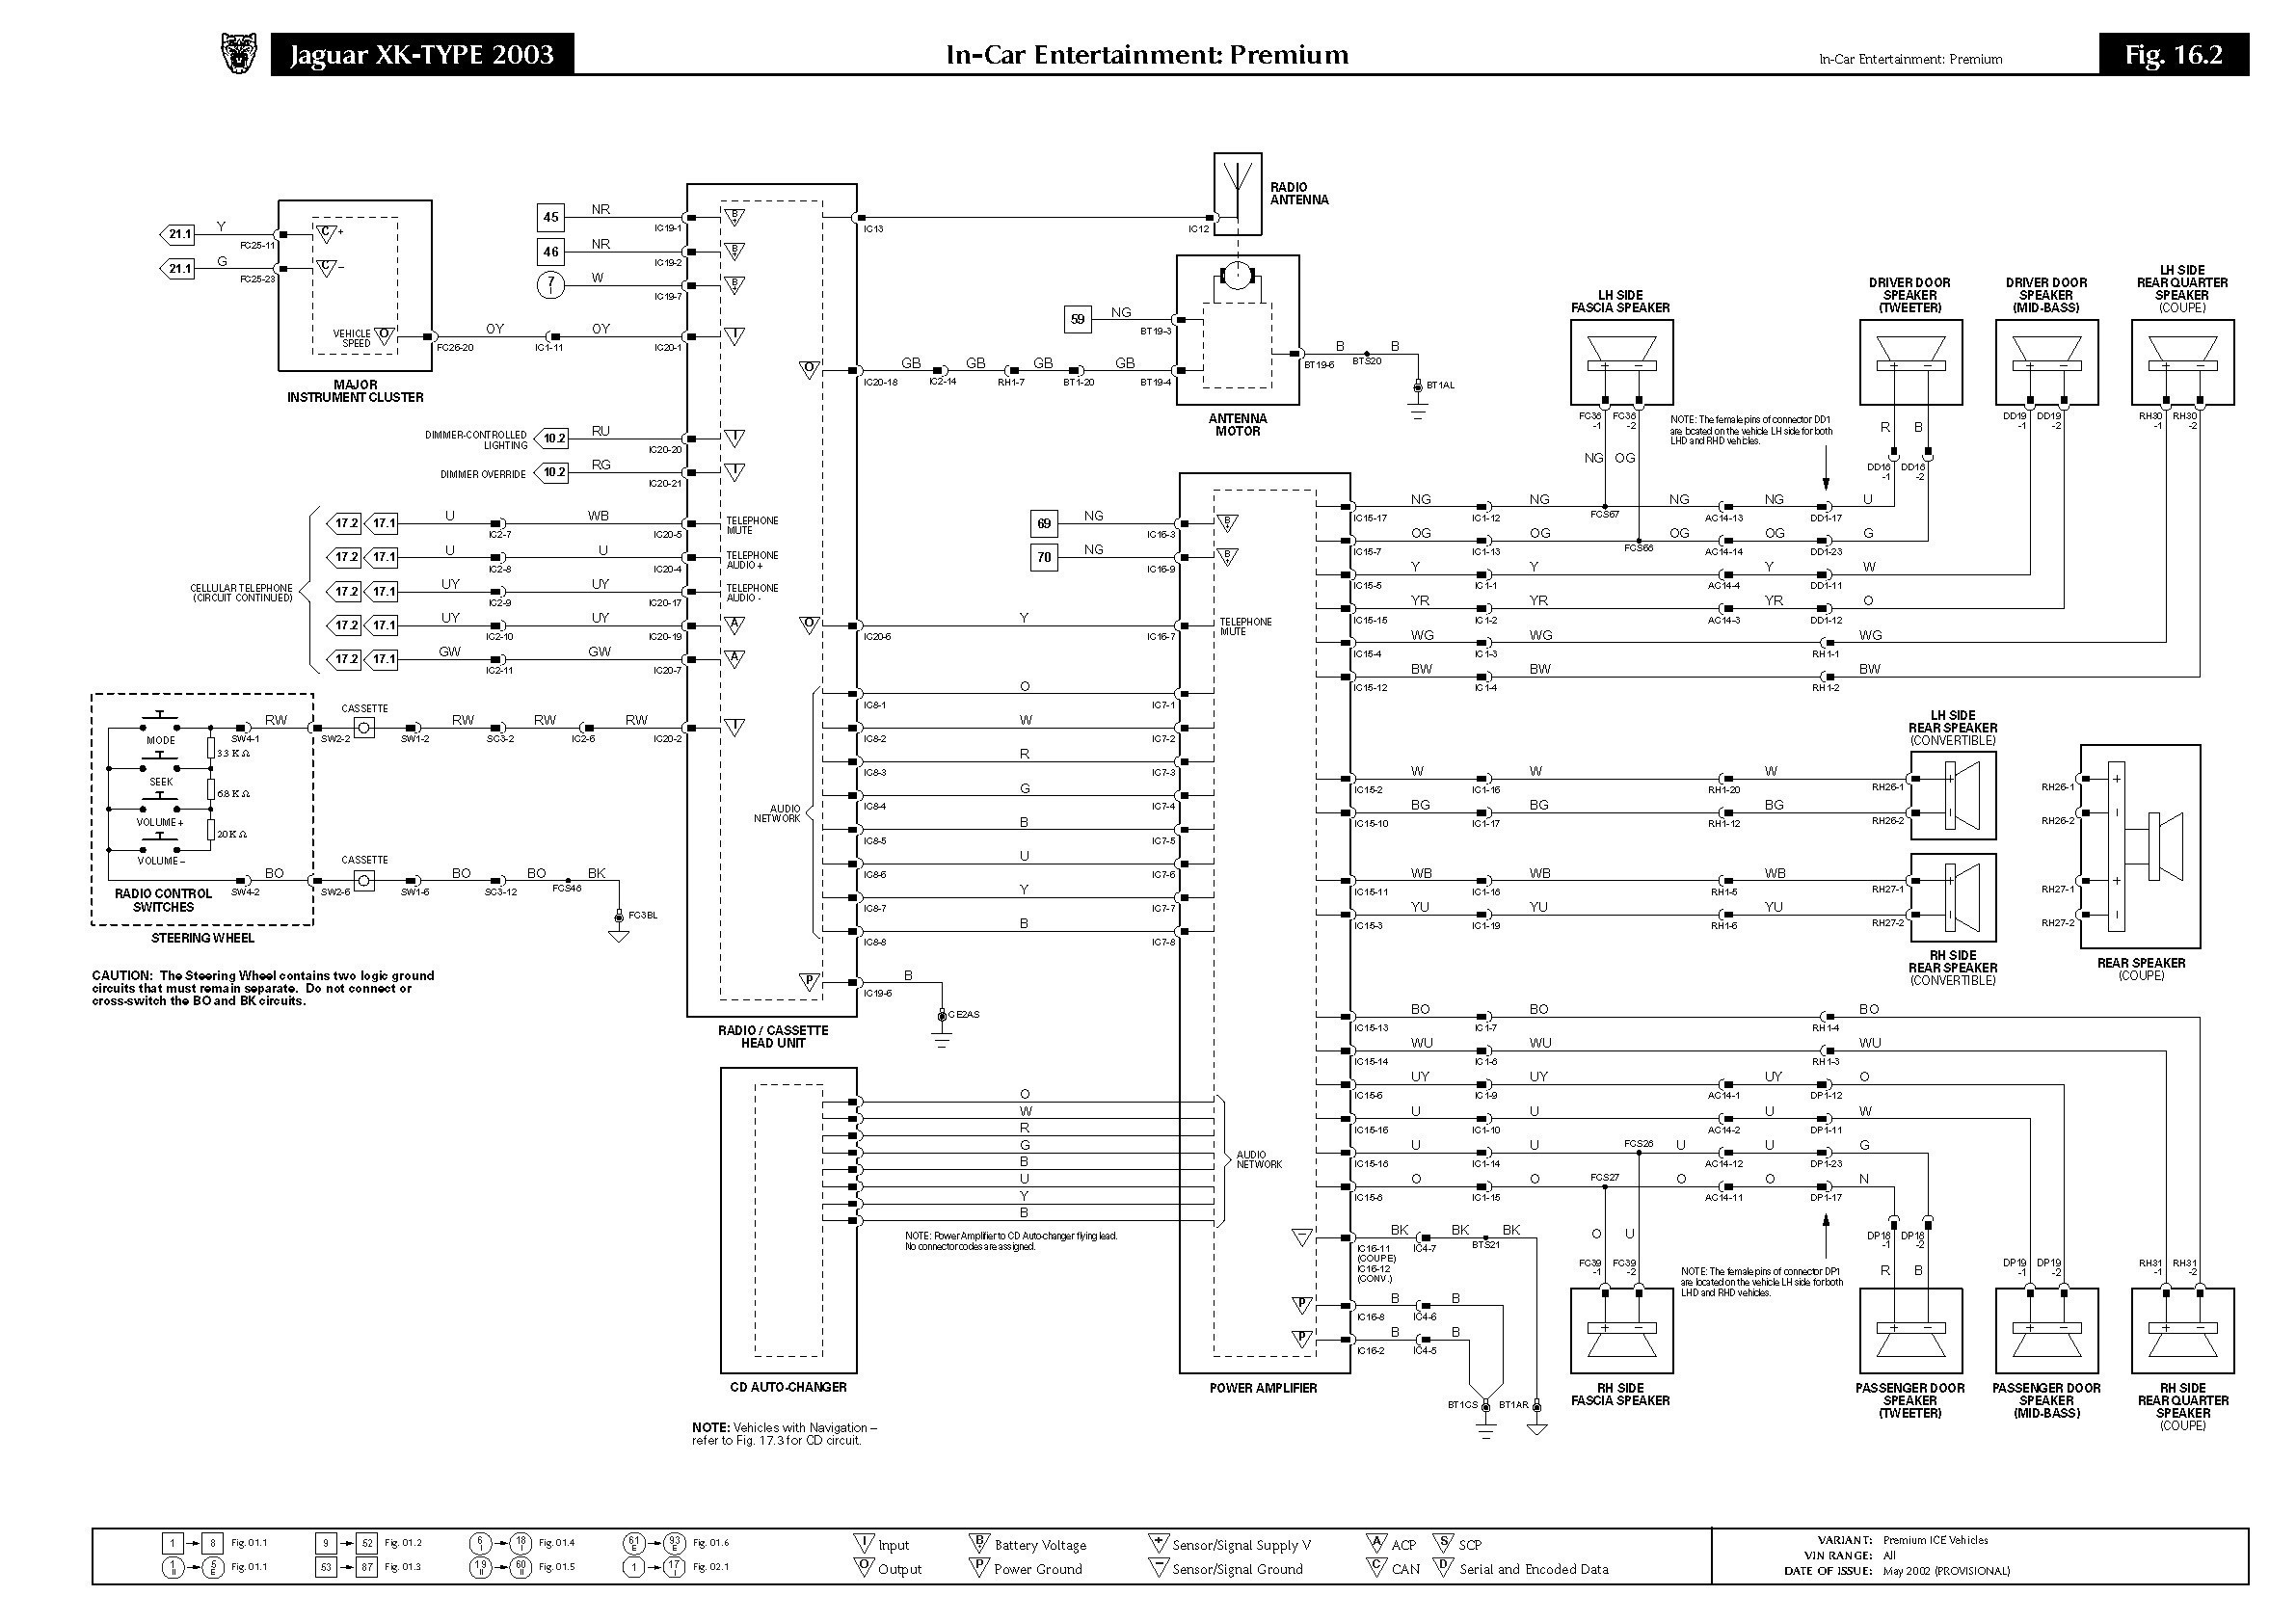 2001 jaguar s type wiring diagram volleyball set numbers engine library